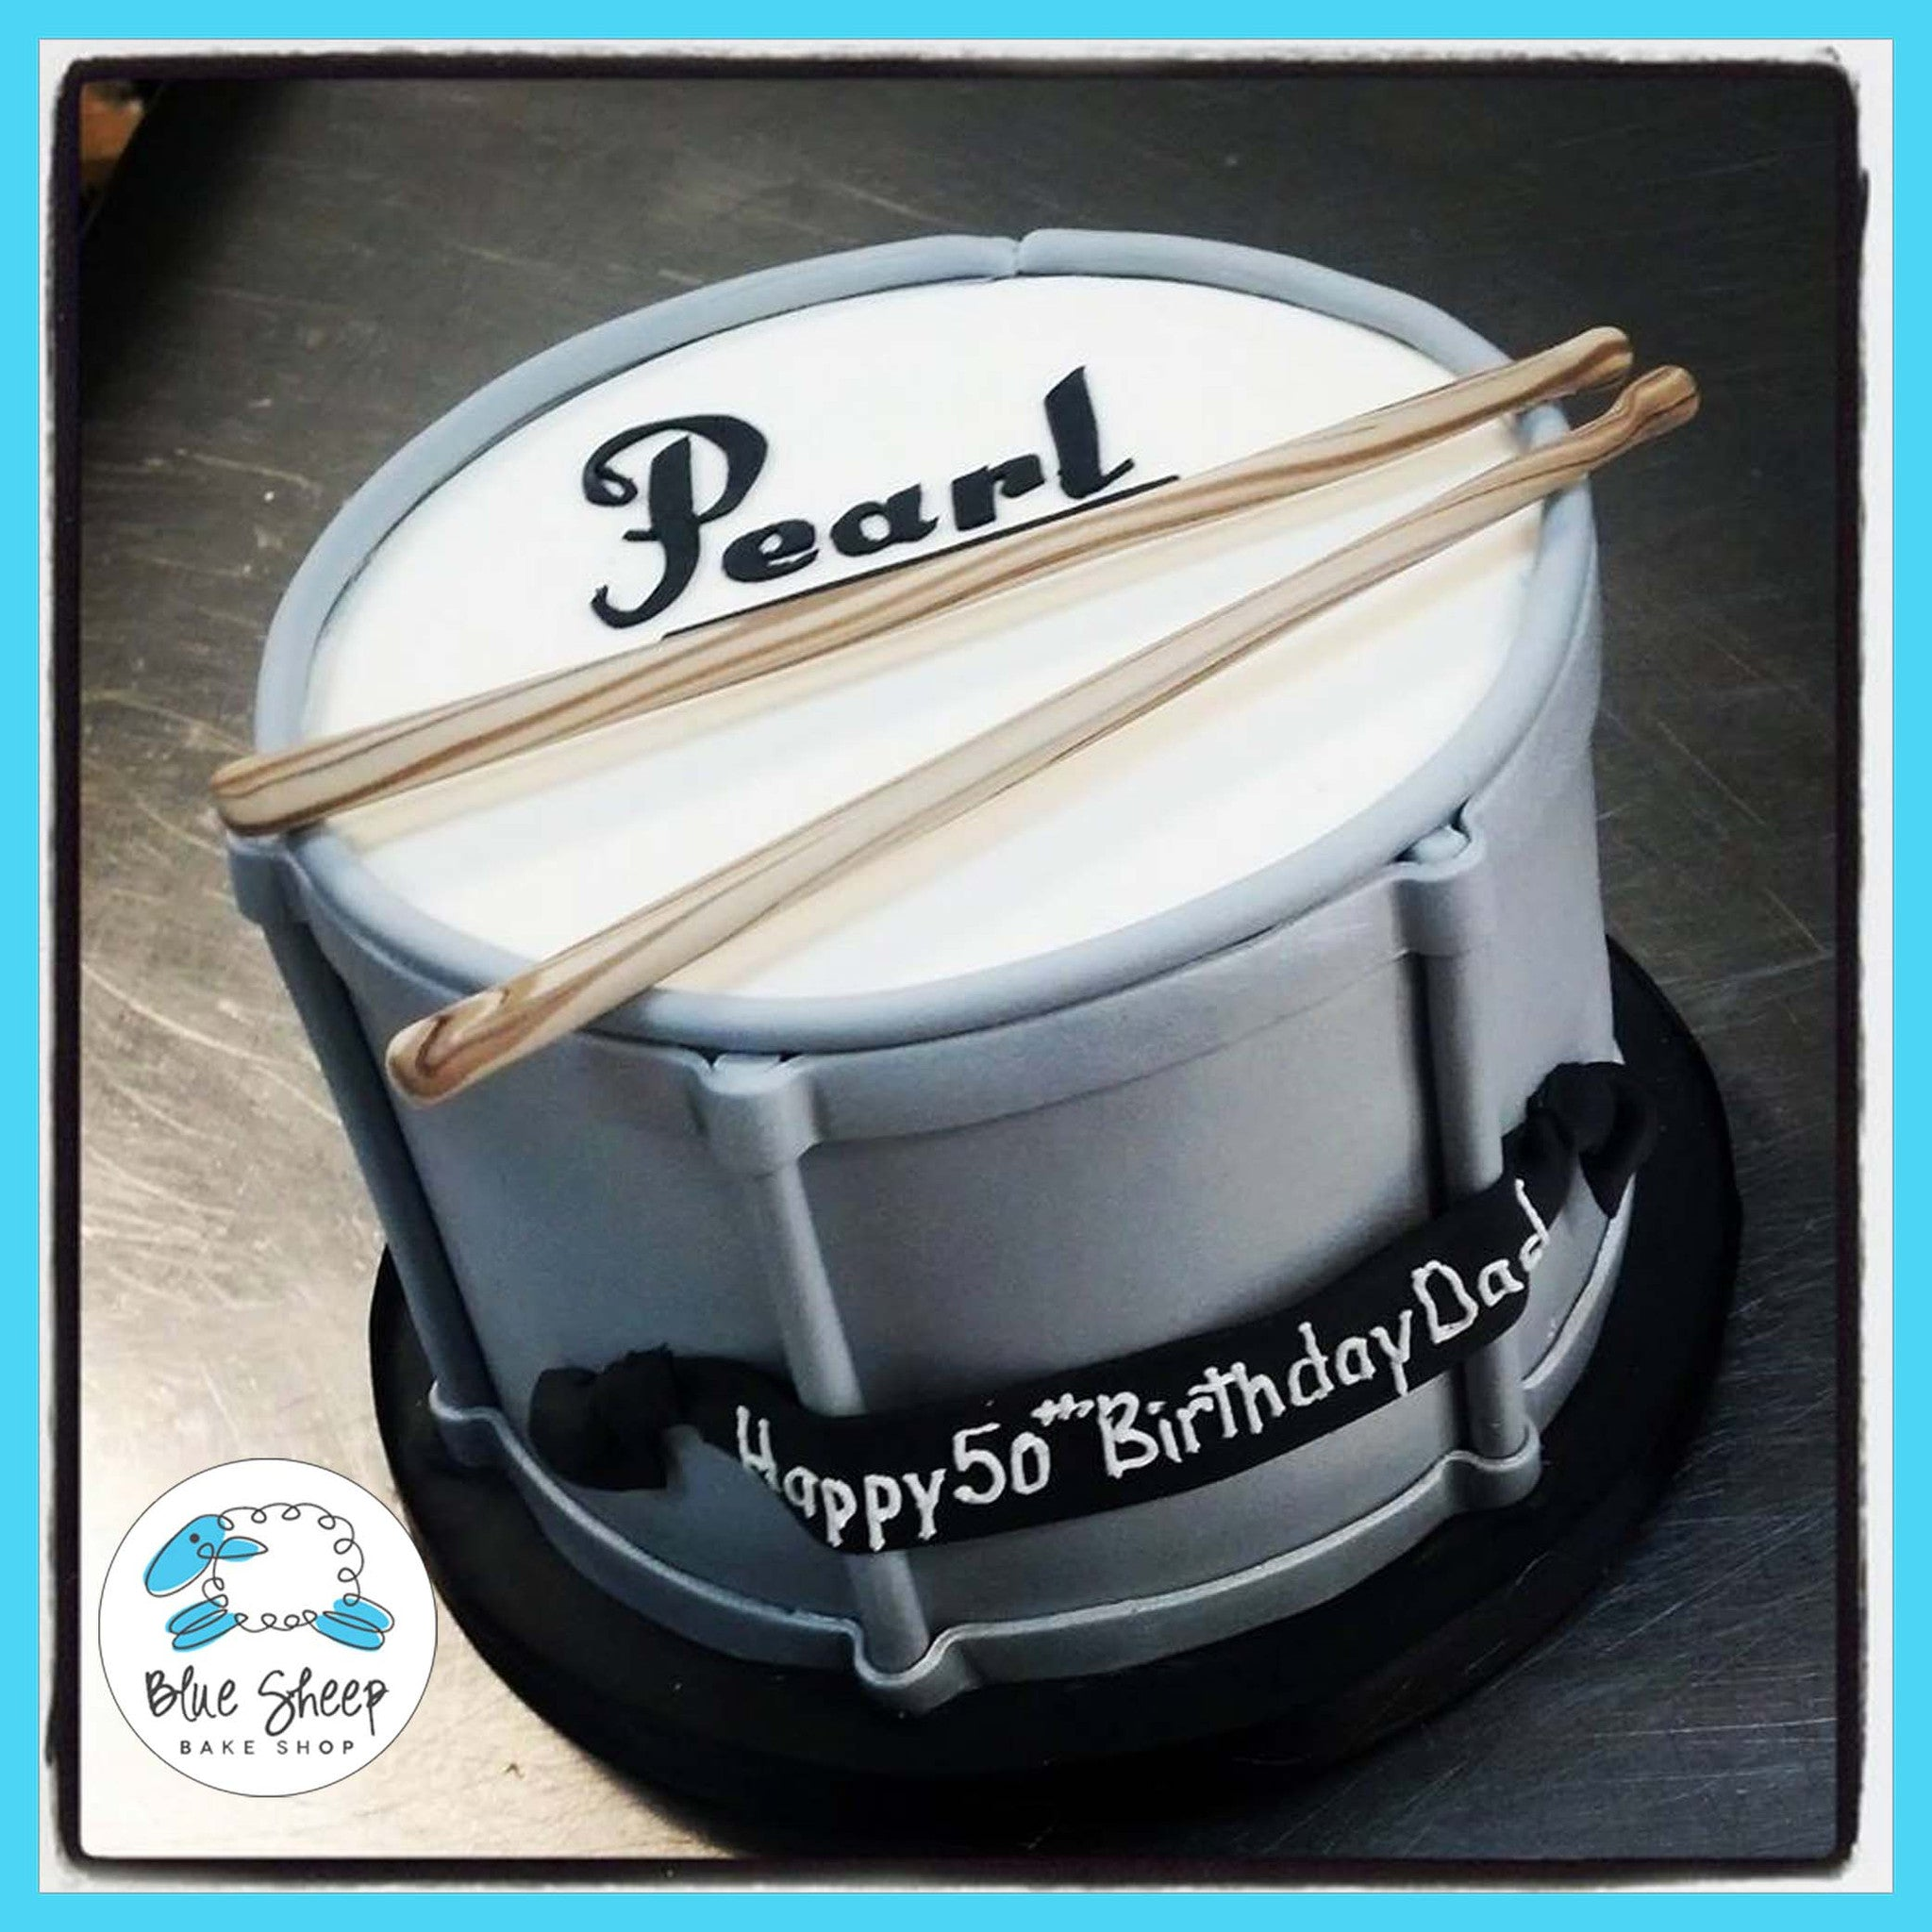 Magnificent Drum 50Th Birthday Cake Blue Sheep Bake Shop Personalised Birthday Cards Veneteletsinfo